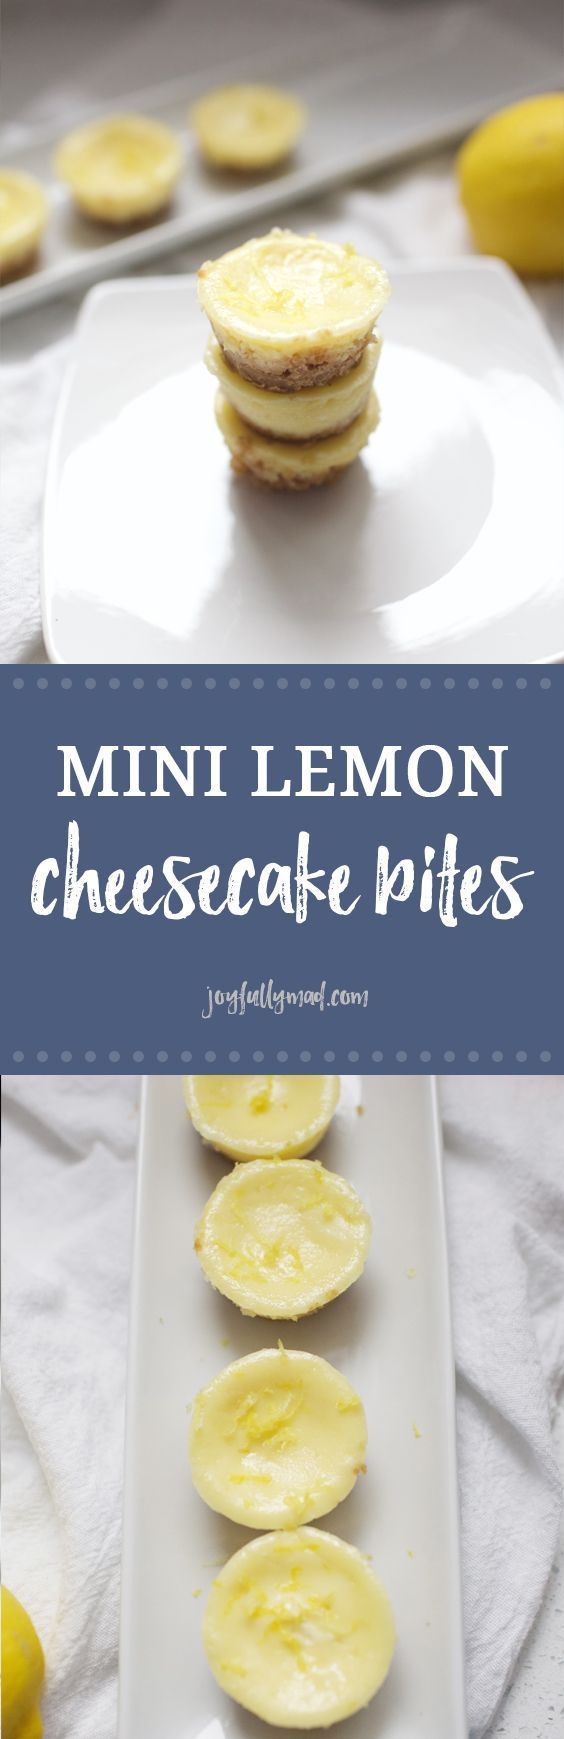 Mini Lemon Cheesecake Bites are theperfect dessert for a party or gathering! These sweet little bites will not last long at your next gathering. The lemon flavor is light and summery, but perfect for any time of year!